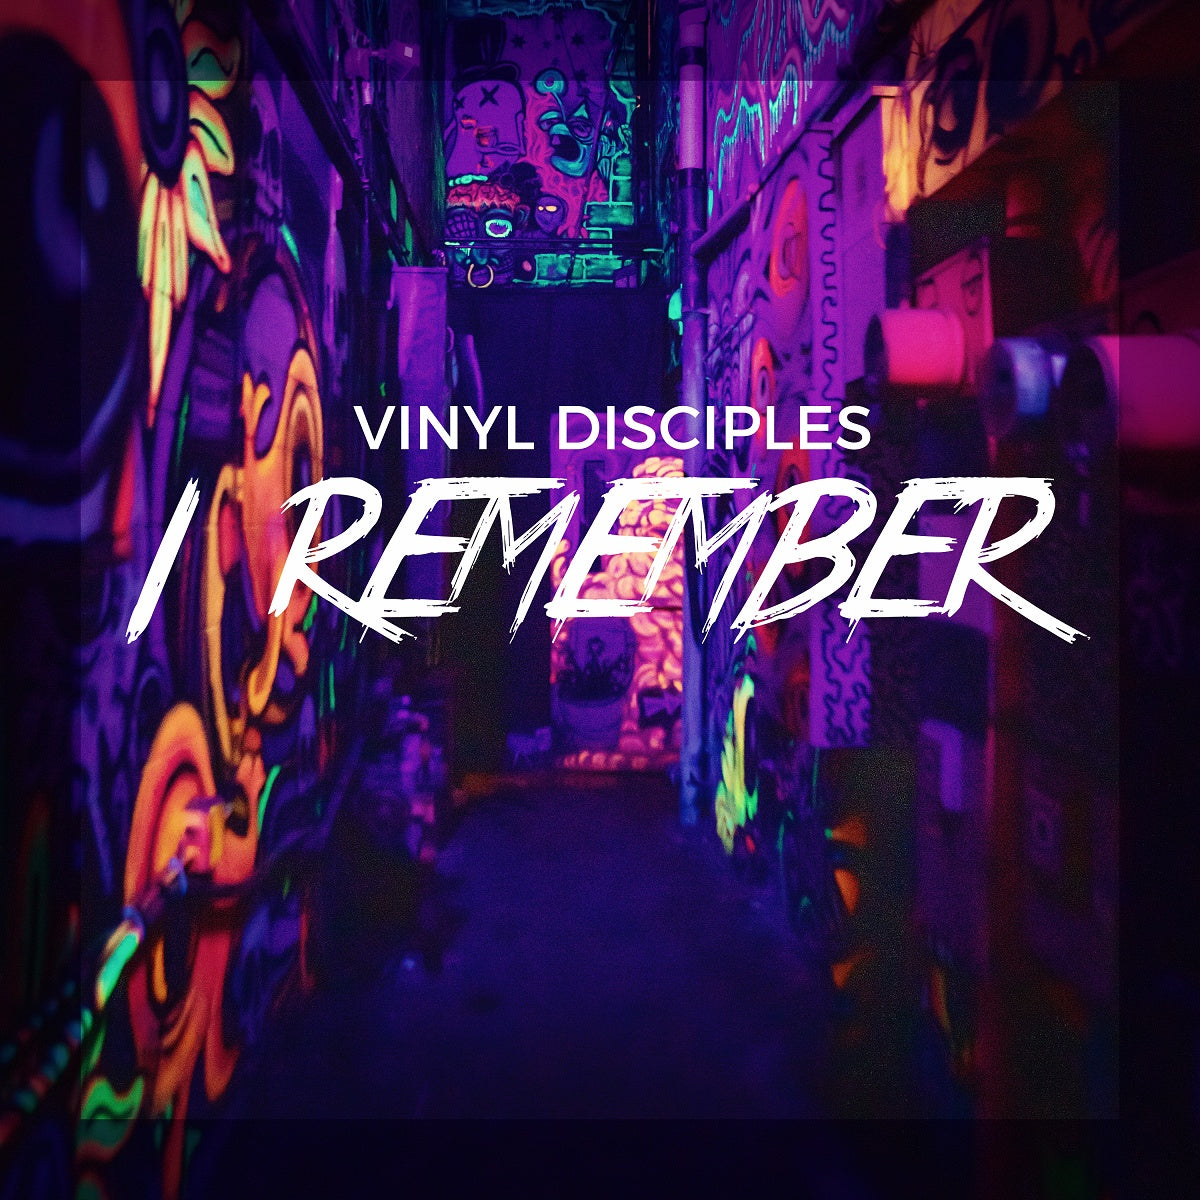 Vinyl Disciples – 'I Remember'